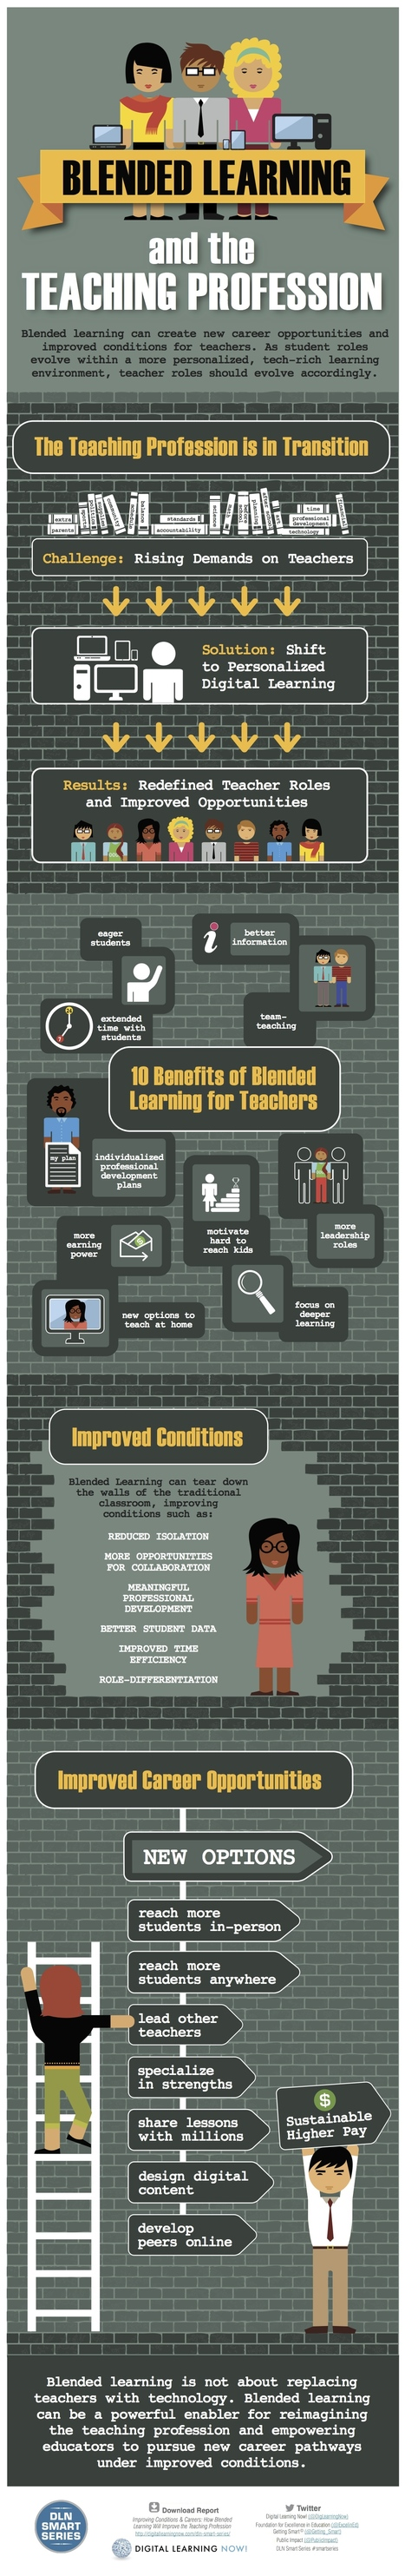 10 Reasons Teachers should Try Blended Learning [Infographic] | Integração curricular das TIC | Scoop.it